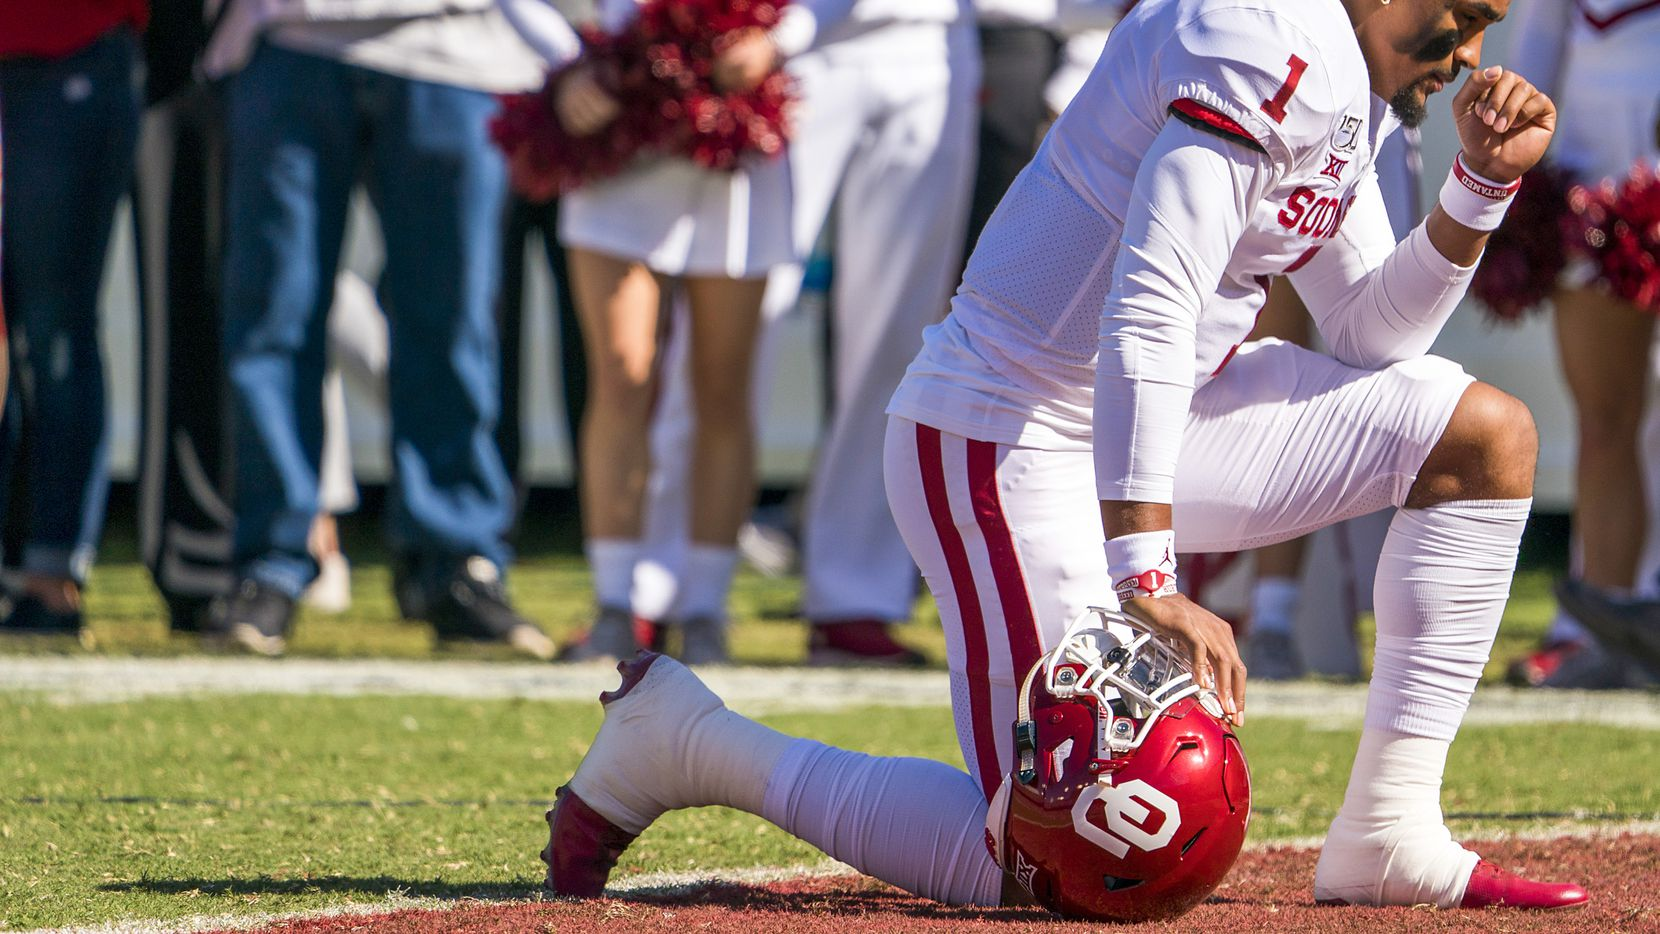 Oklahoma quarterback Jalen Hurts (1) prays on the field before an NCAA football game between Texas and Oklahoma at the Cotton Bowl on Saturday, Oct. 12, 2019, in Dallas.